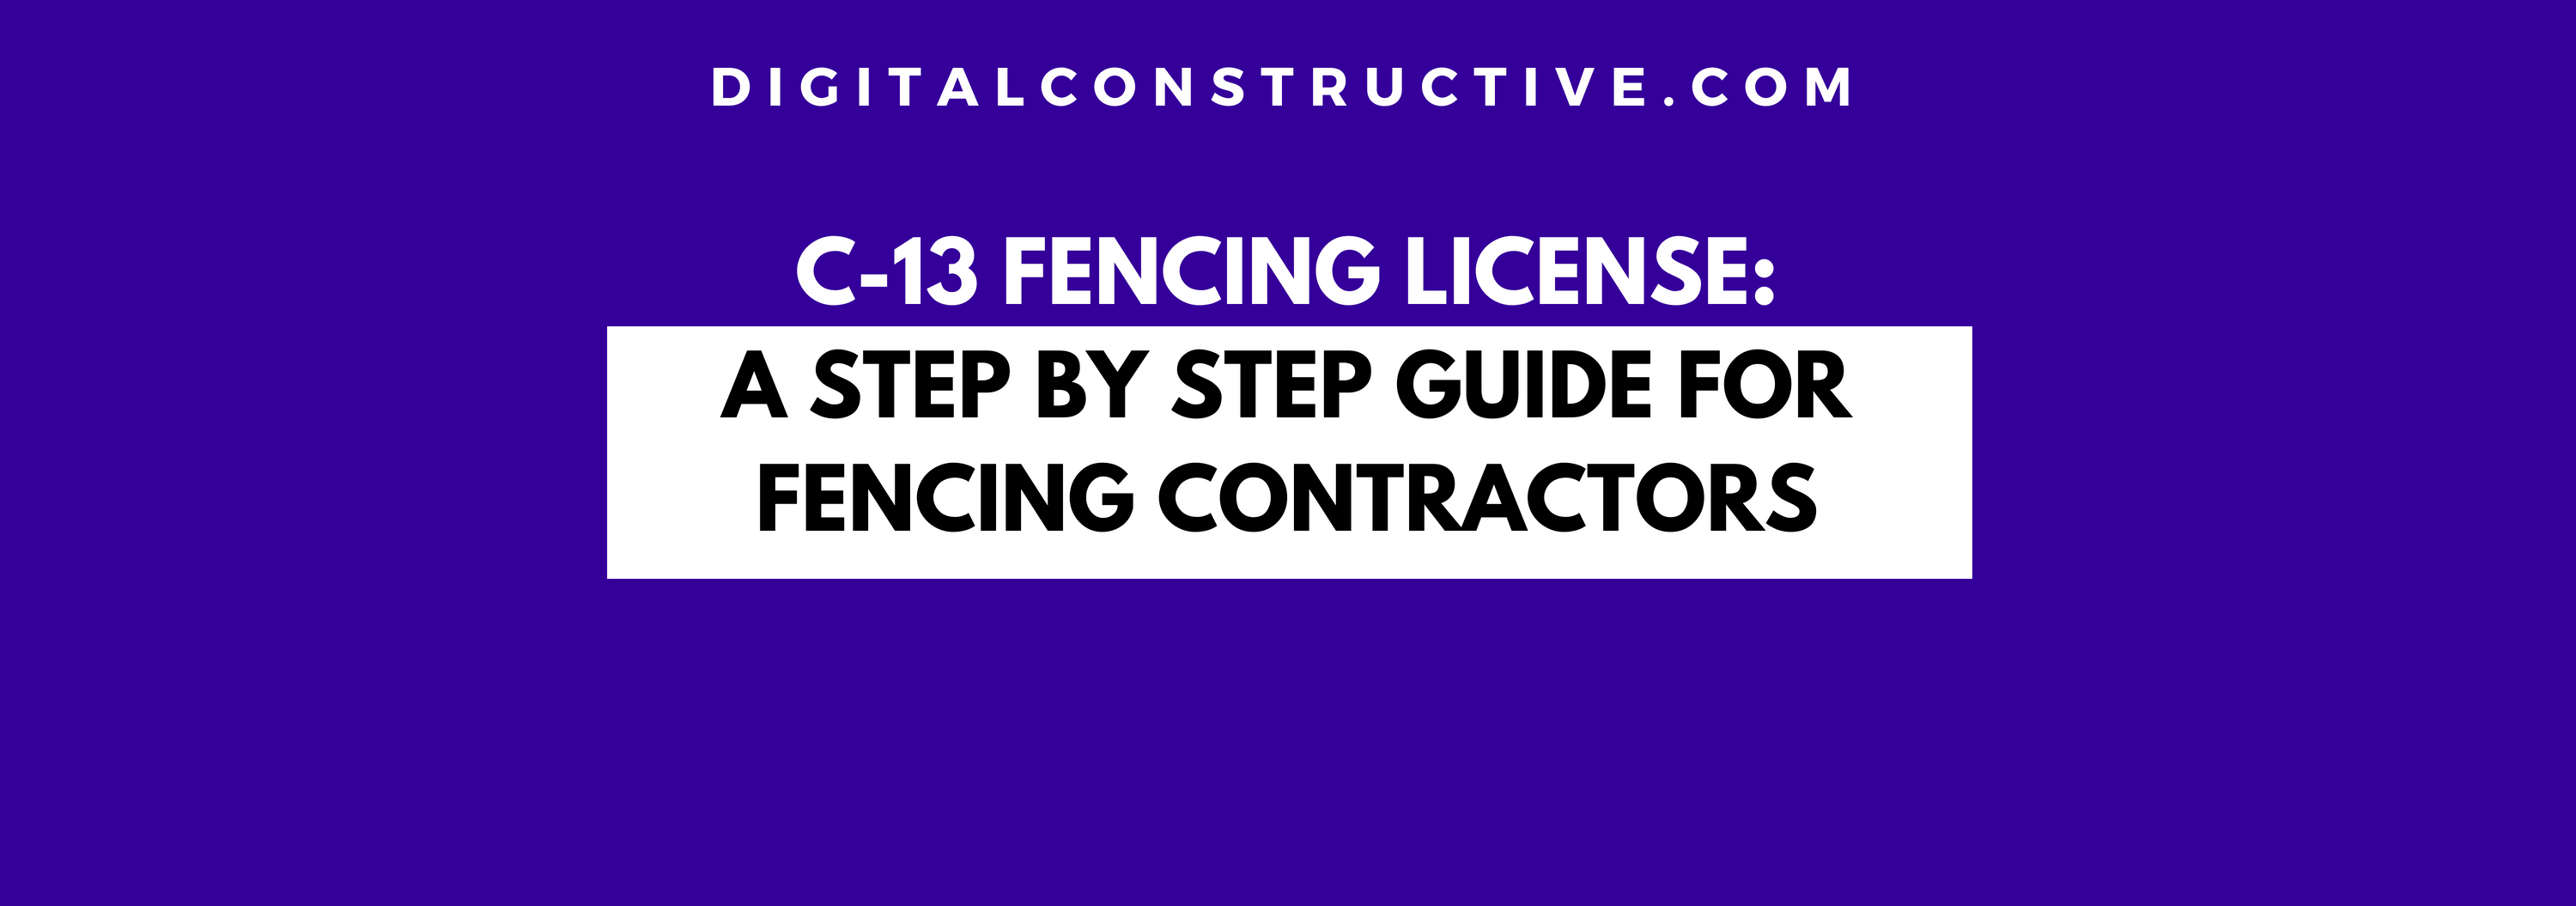 featured image for article on how to get a C-13 fencing license in the state of california